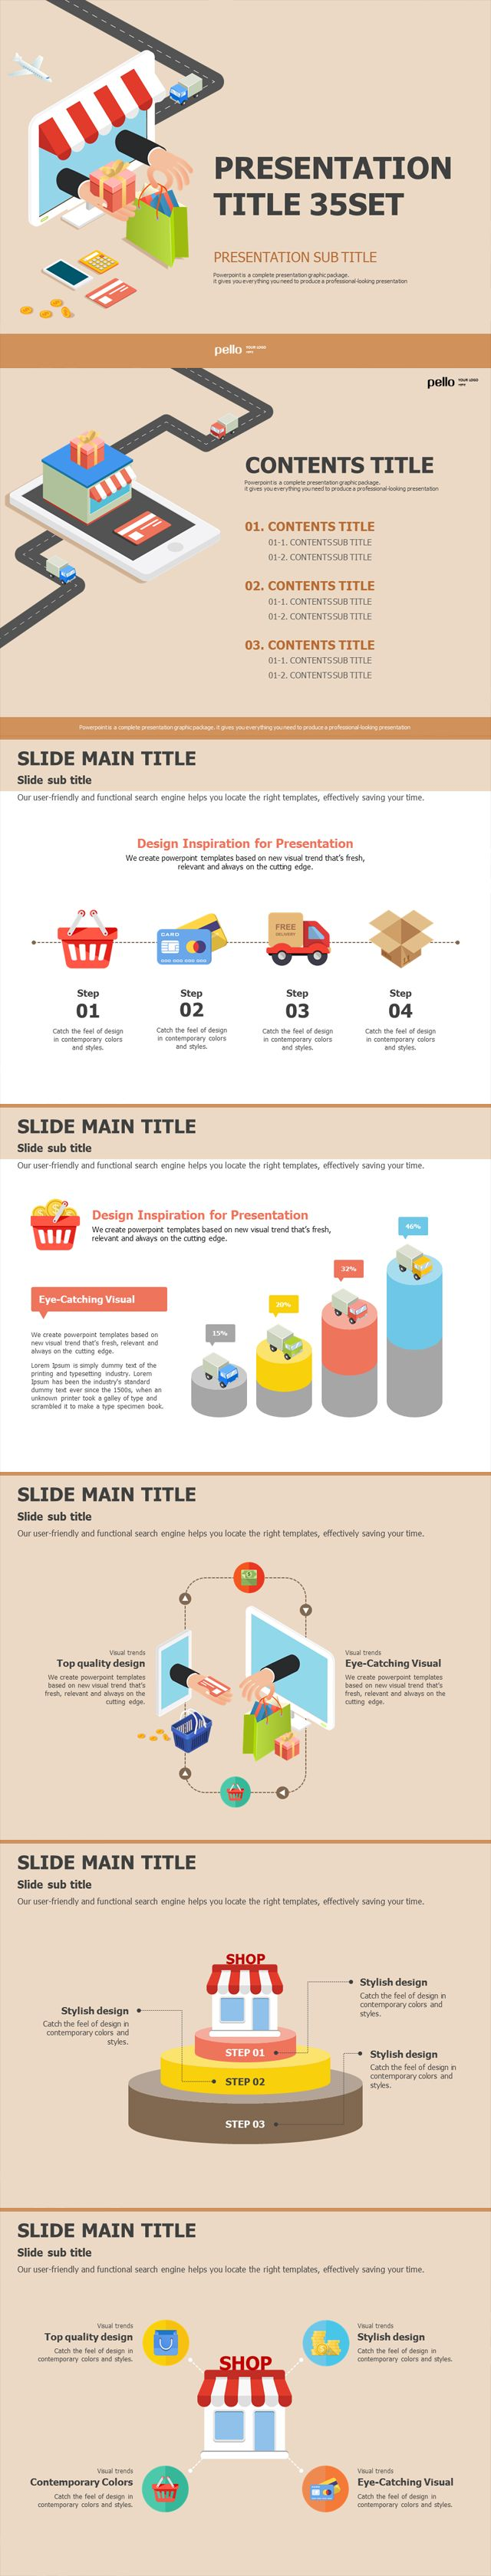 17 best images about good pello templates high this website is for is your first and best source for all of the information you re looking for from general topics to more of what you would expect